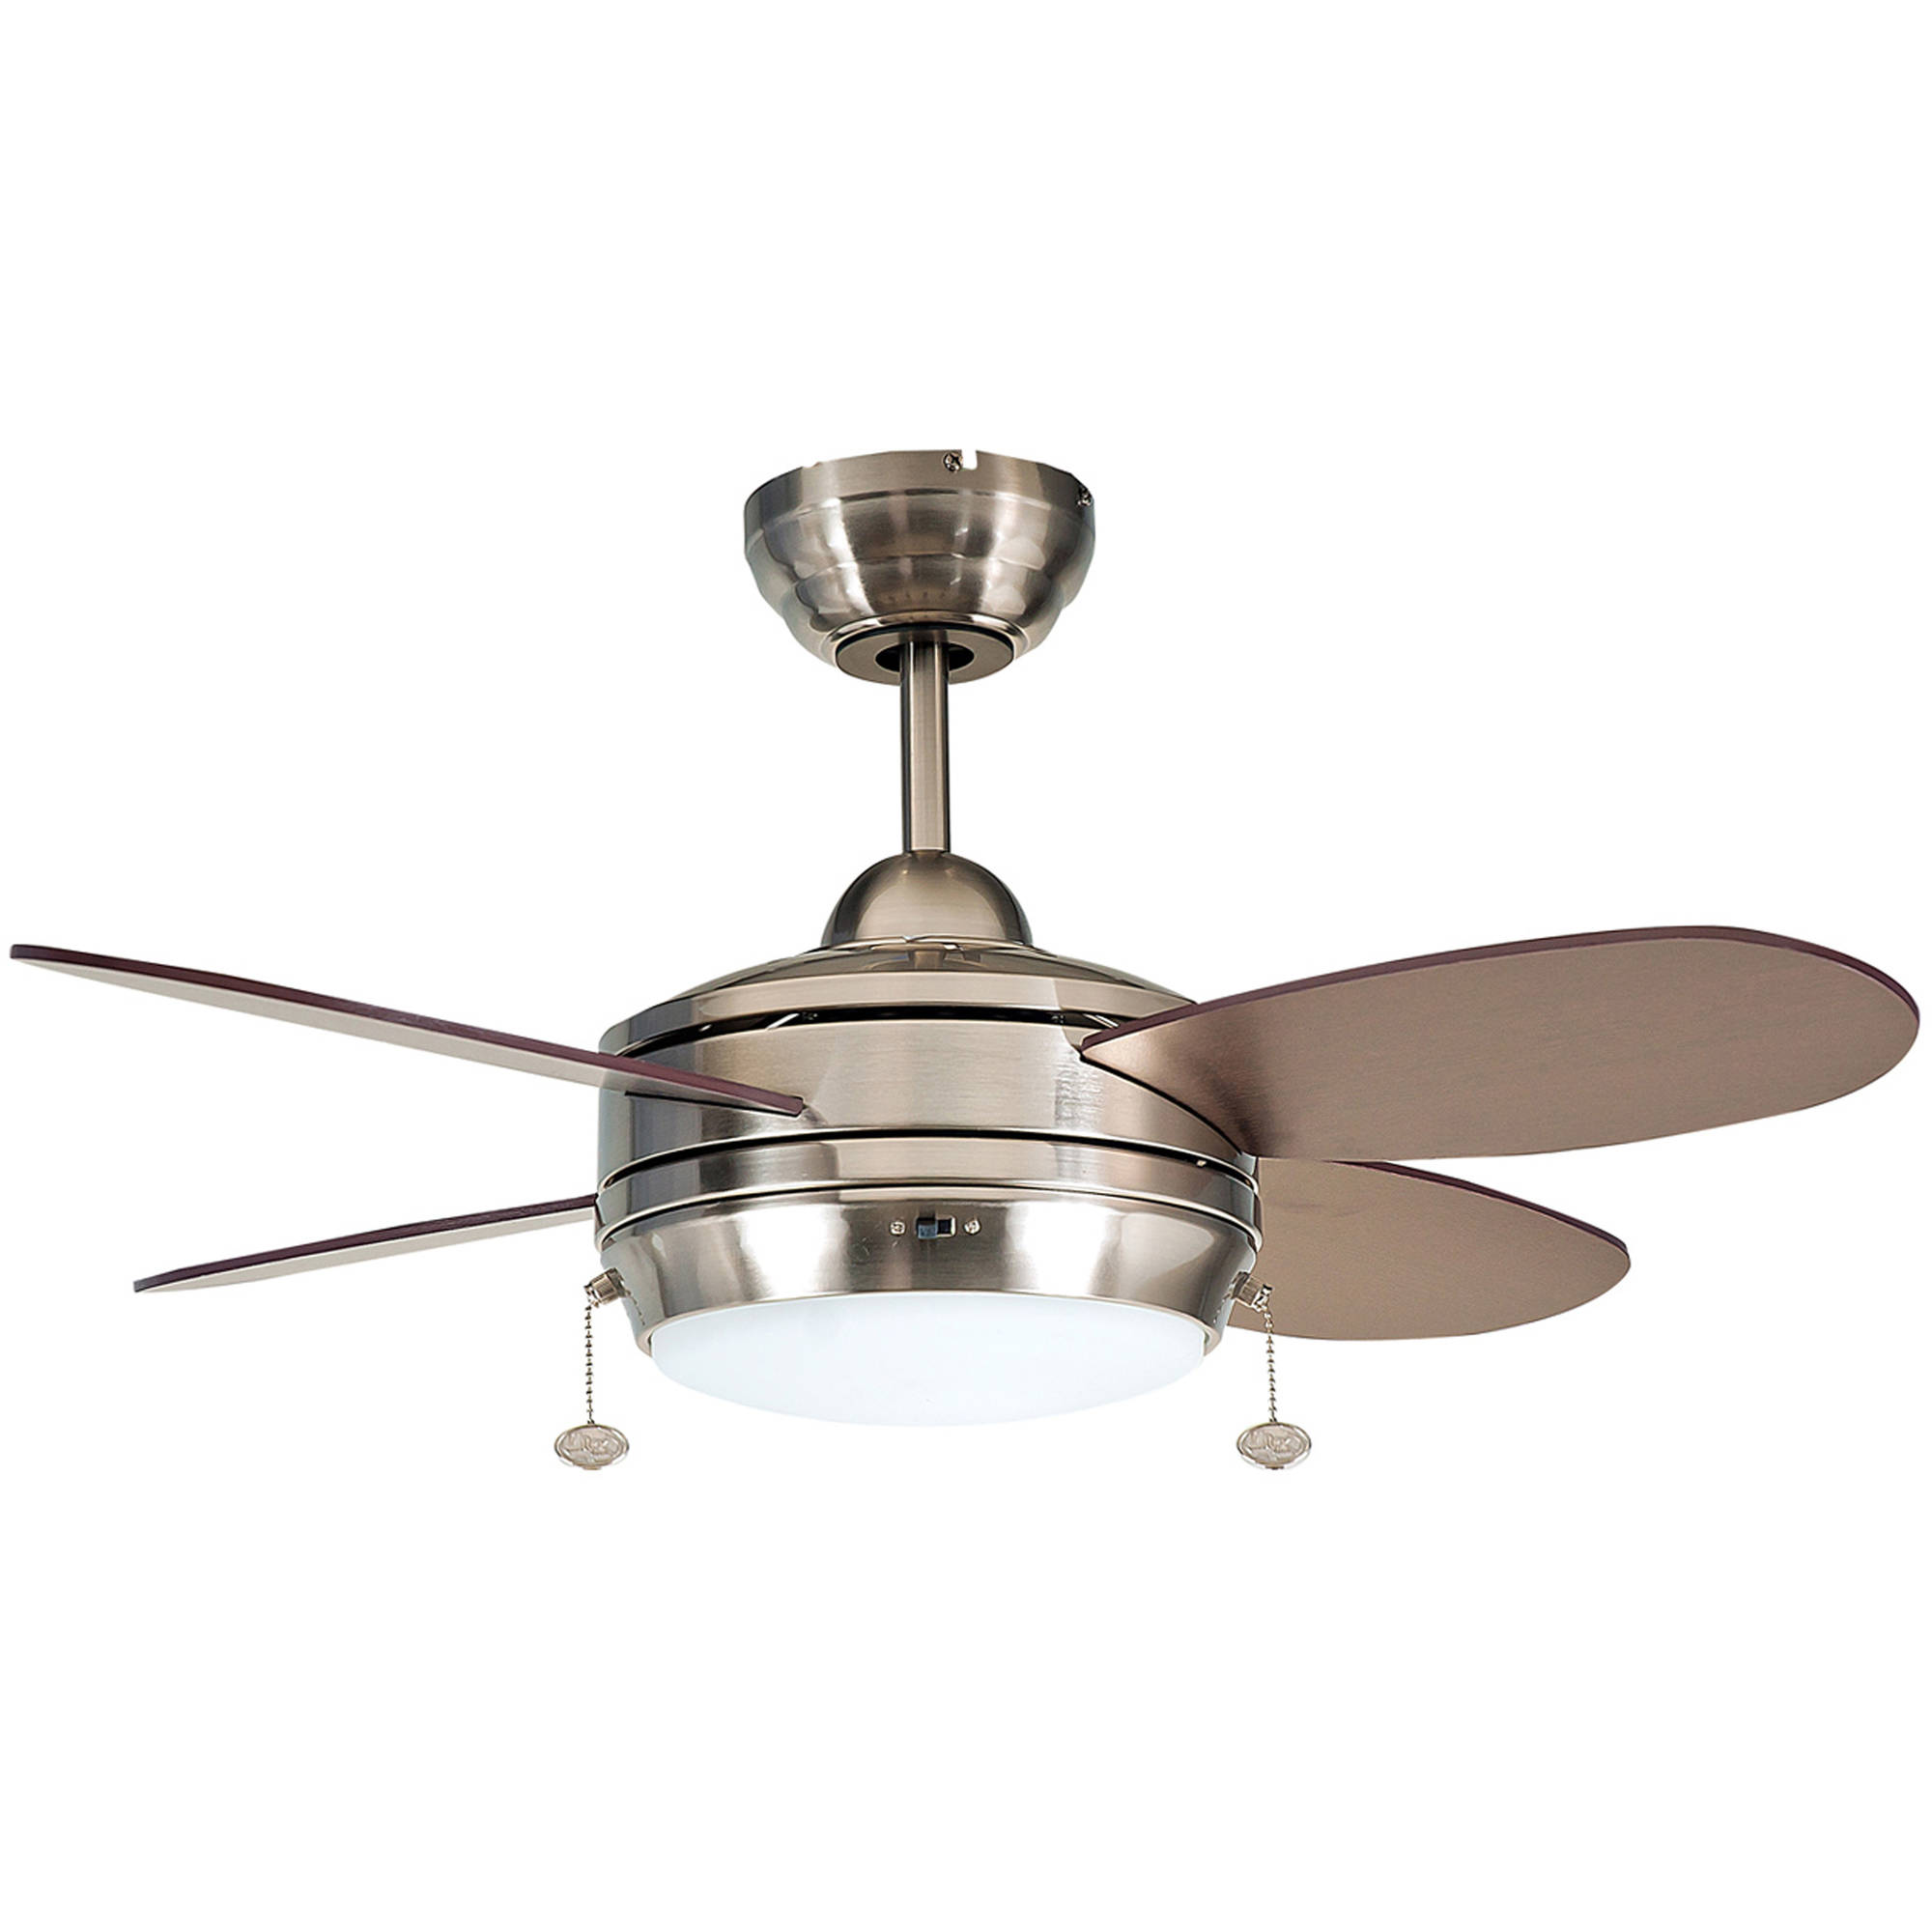 "Litex Industries Maksim 36"" Dual Mount Ceiling Fan Brushed Nickel"